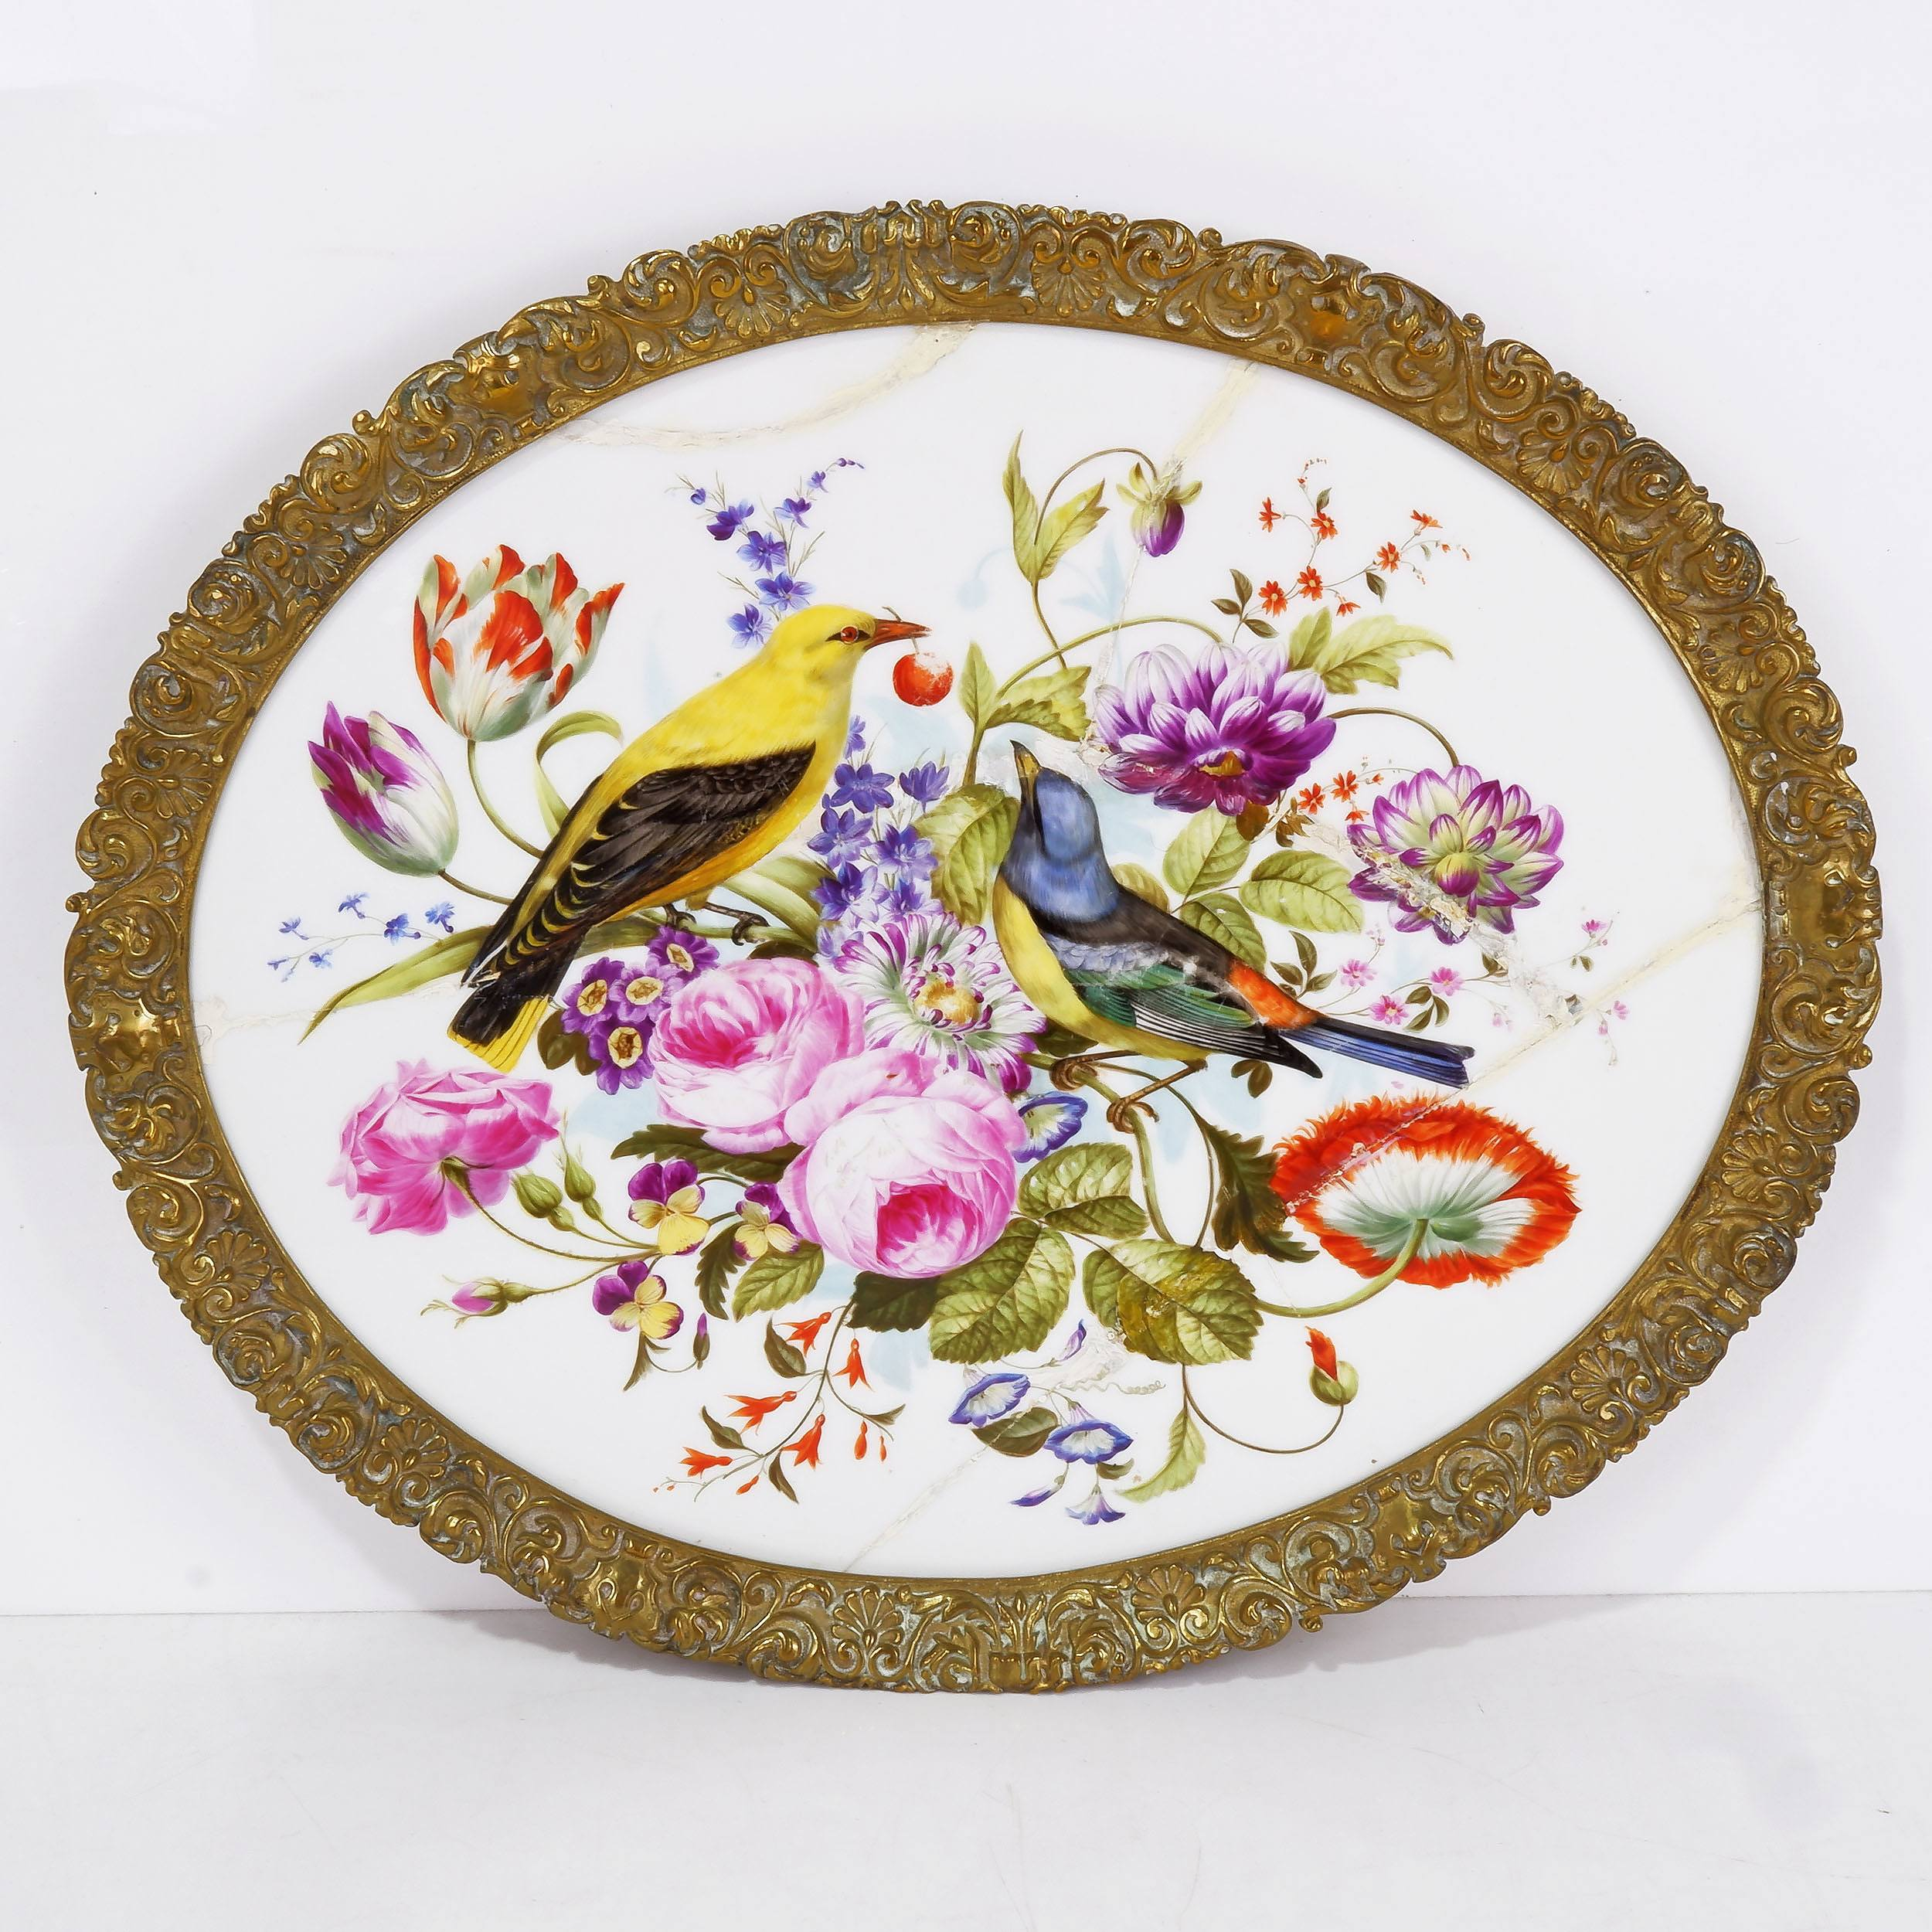 '19th Century Continental Ormolu Mounted Porcelain Tray Hand Painted with Birds'